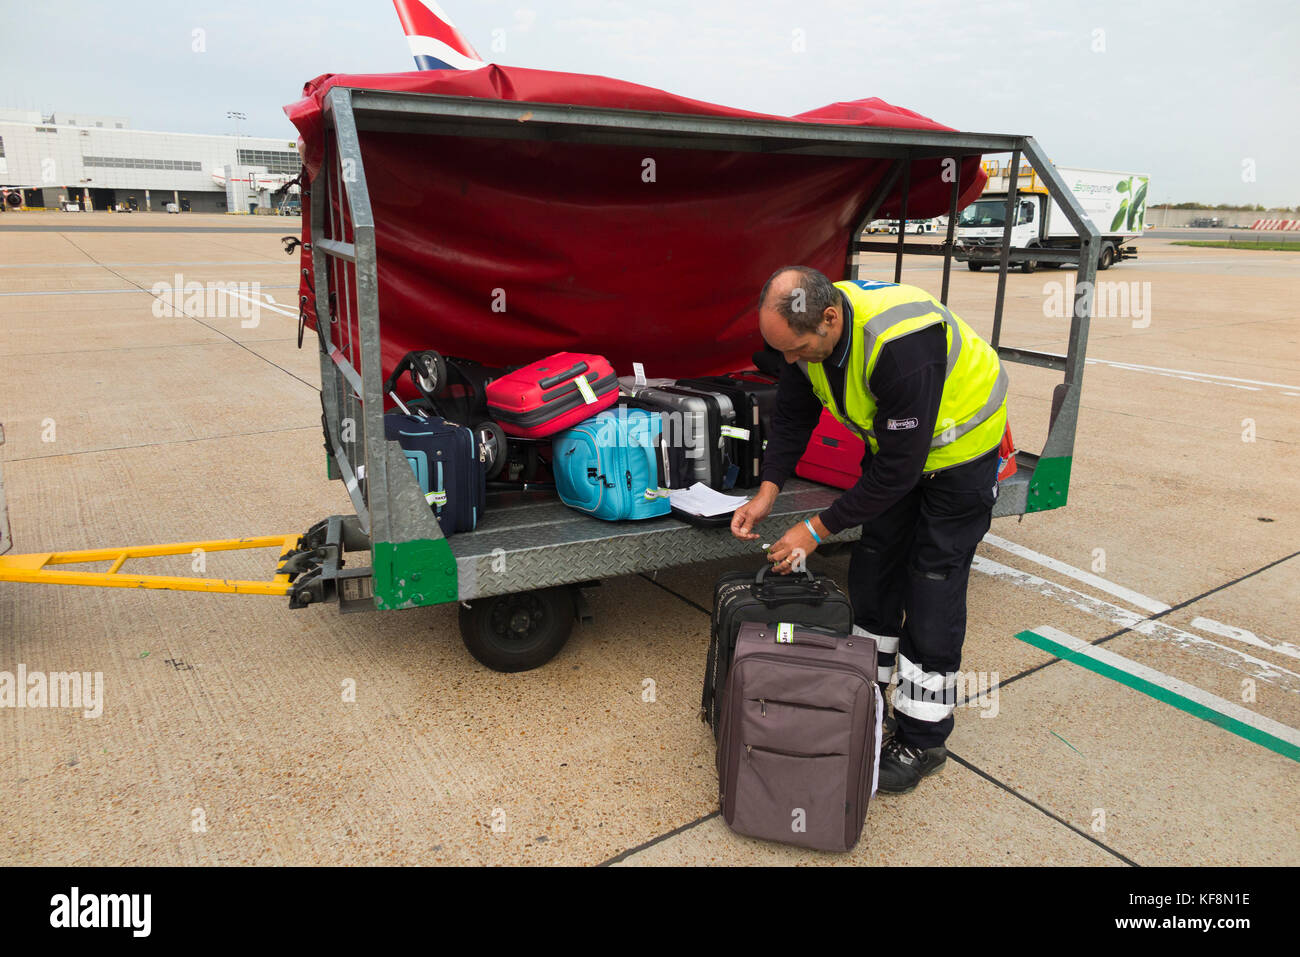 Baggage handlers trolley / truck carrier / vehicle / aircraft loader / container / ground support staff / carrying - Stock Image